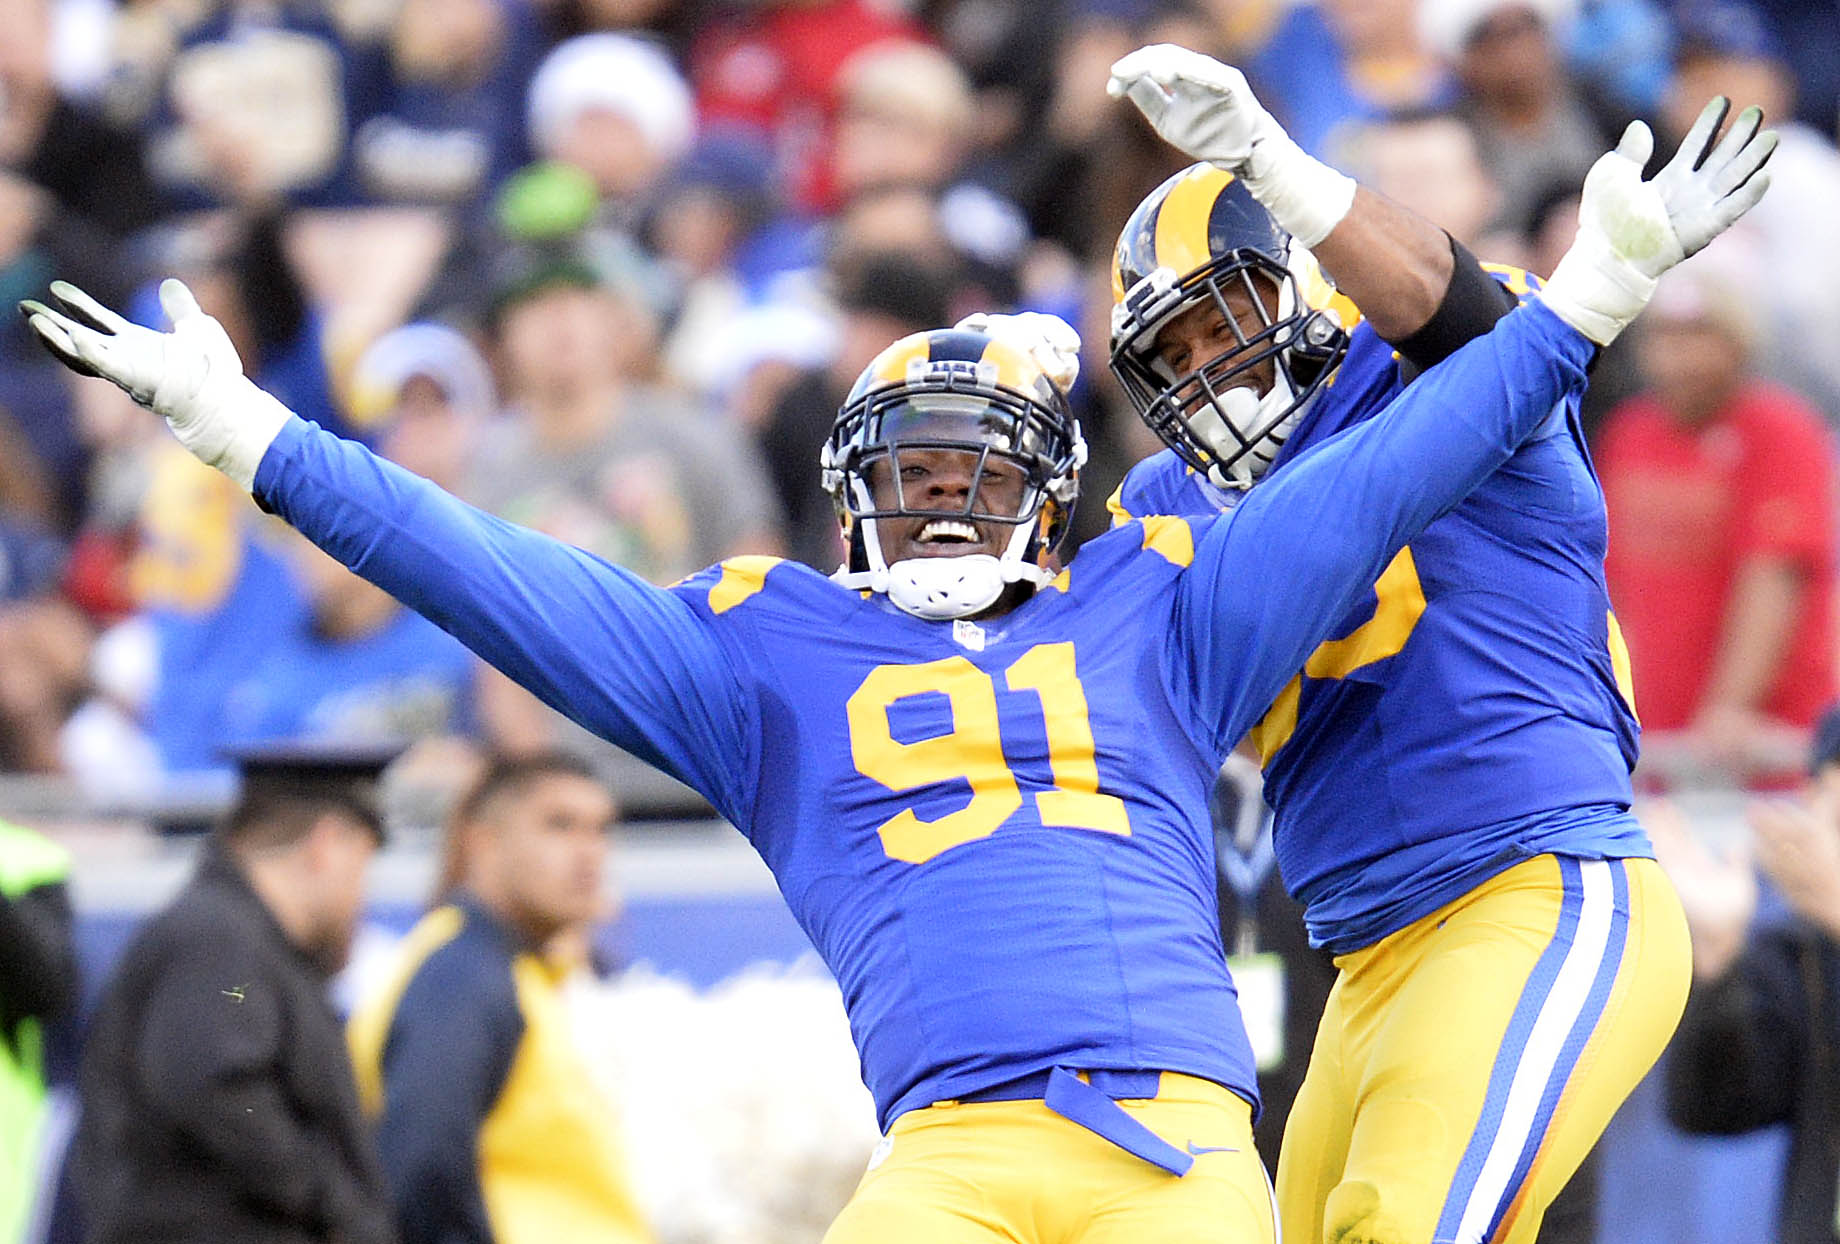 Los Angeles Rams DE Dominique Easley celebrates with DL Aaron Donald after sacking San Francisco 49ers QB Colin Kaepernick in Week 16, December 24, 2016.